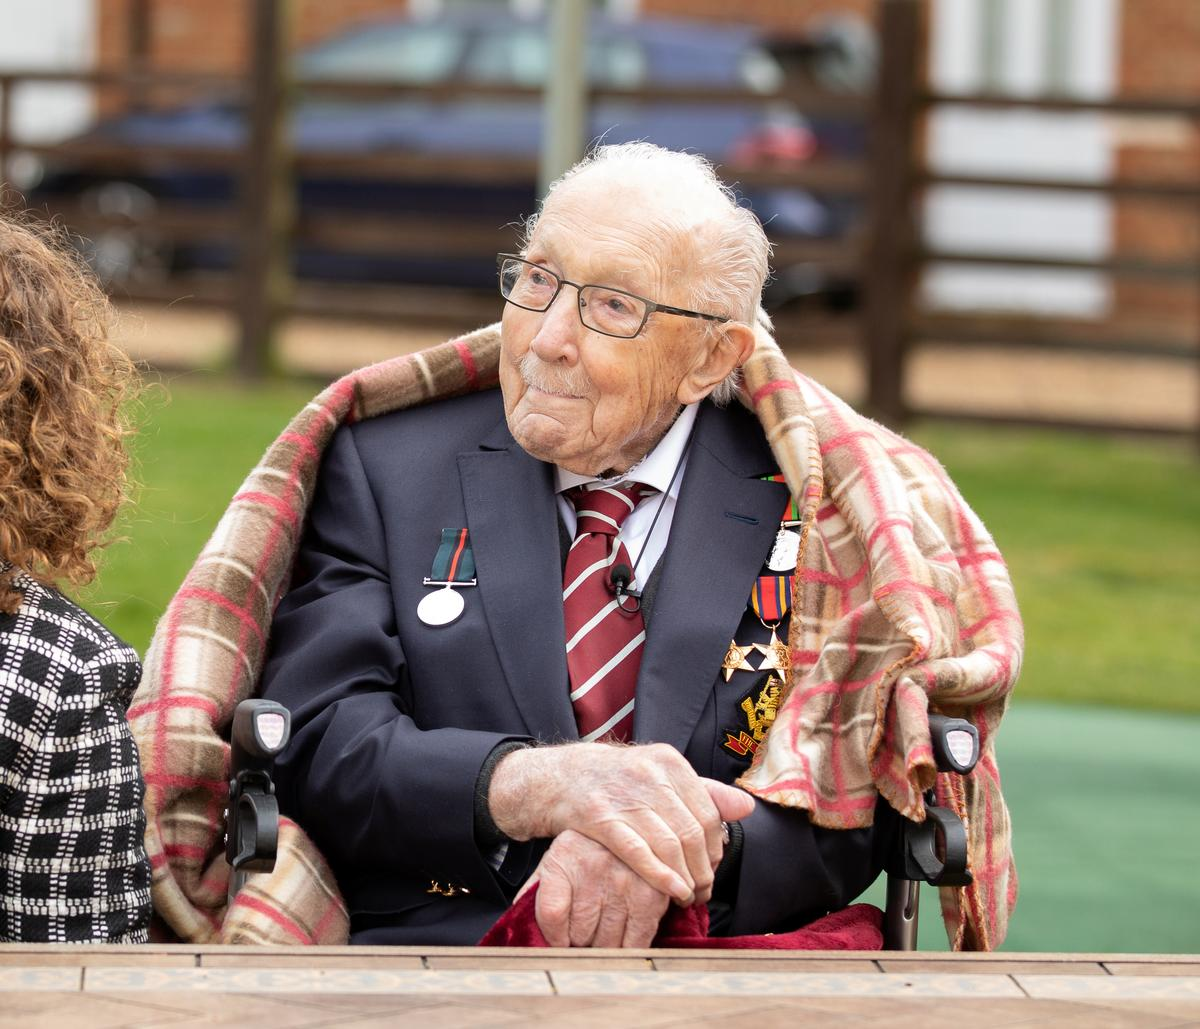 Arise, Sir Tom: veteran hopes queen is not 'heavy' with the sword